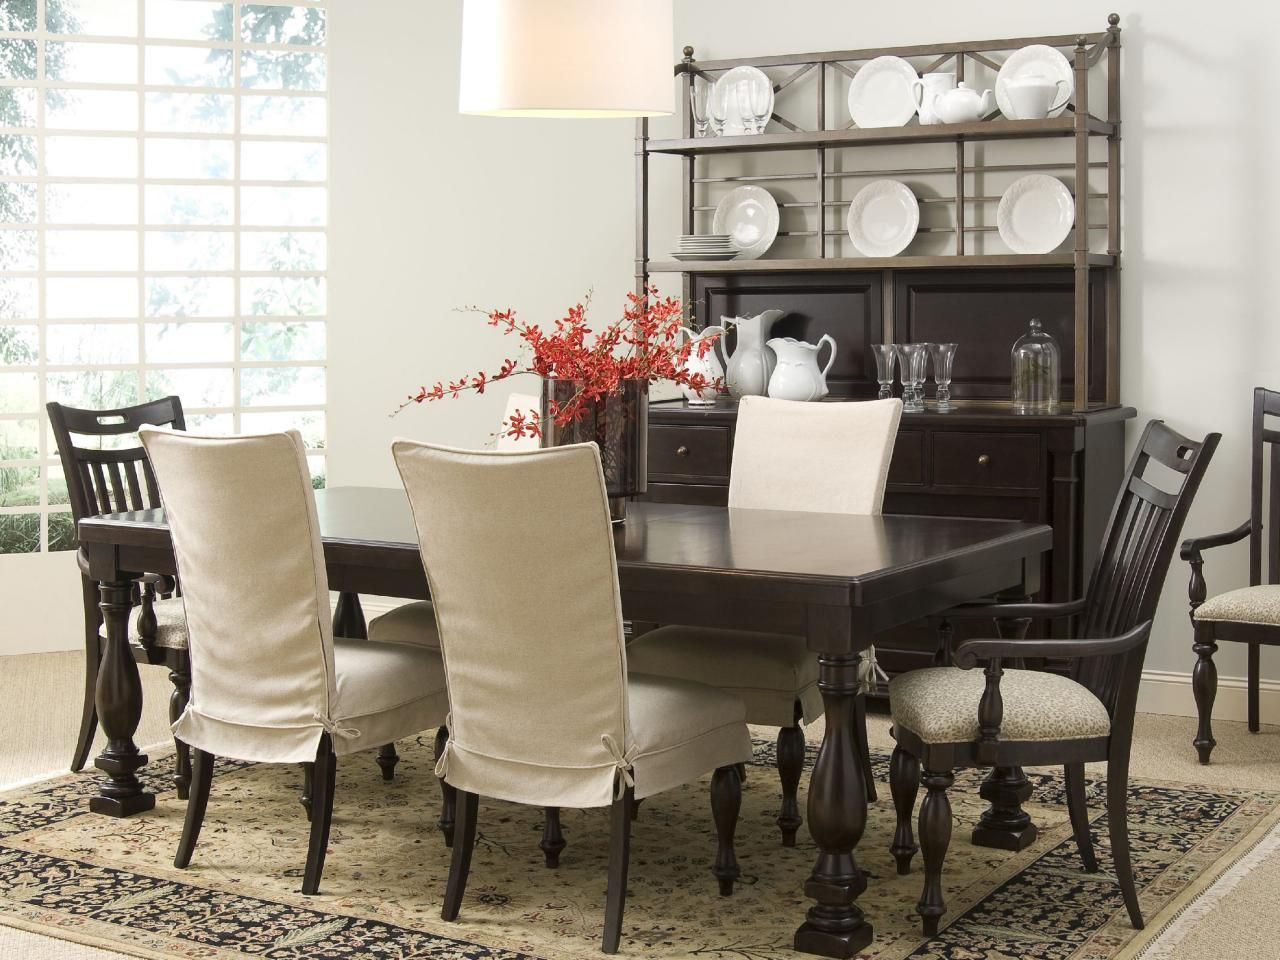 Spice Up Your Dining Room With Stylish Slipcovers | Hgtv, Room and ...